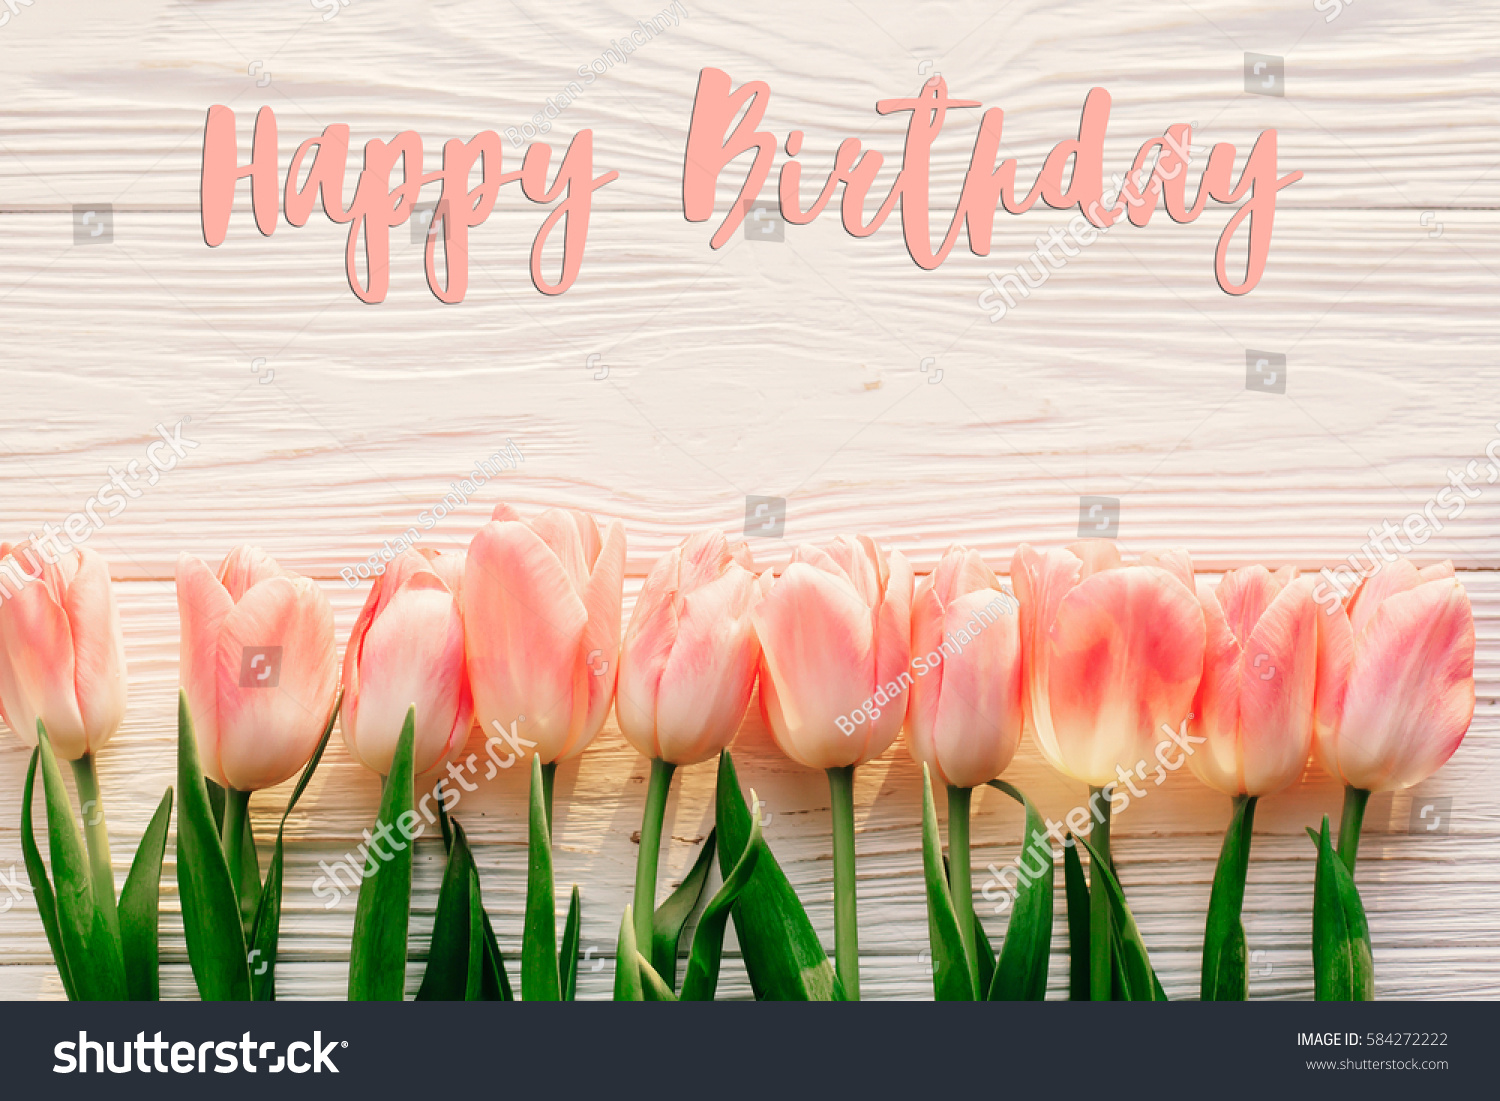 Happy birthday text sign on pink stock photo royalty free happy birthday text sign on pink tulips on white rustic wooden background flat lay spring izmirmasajfo